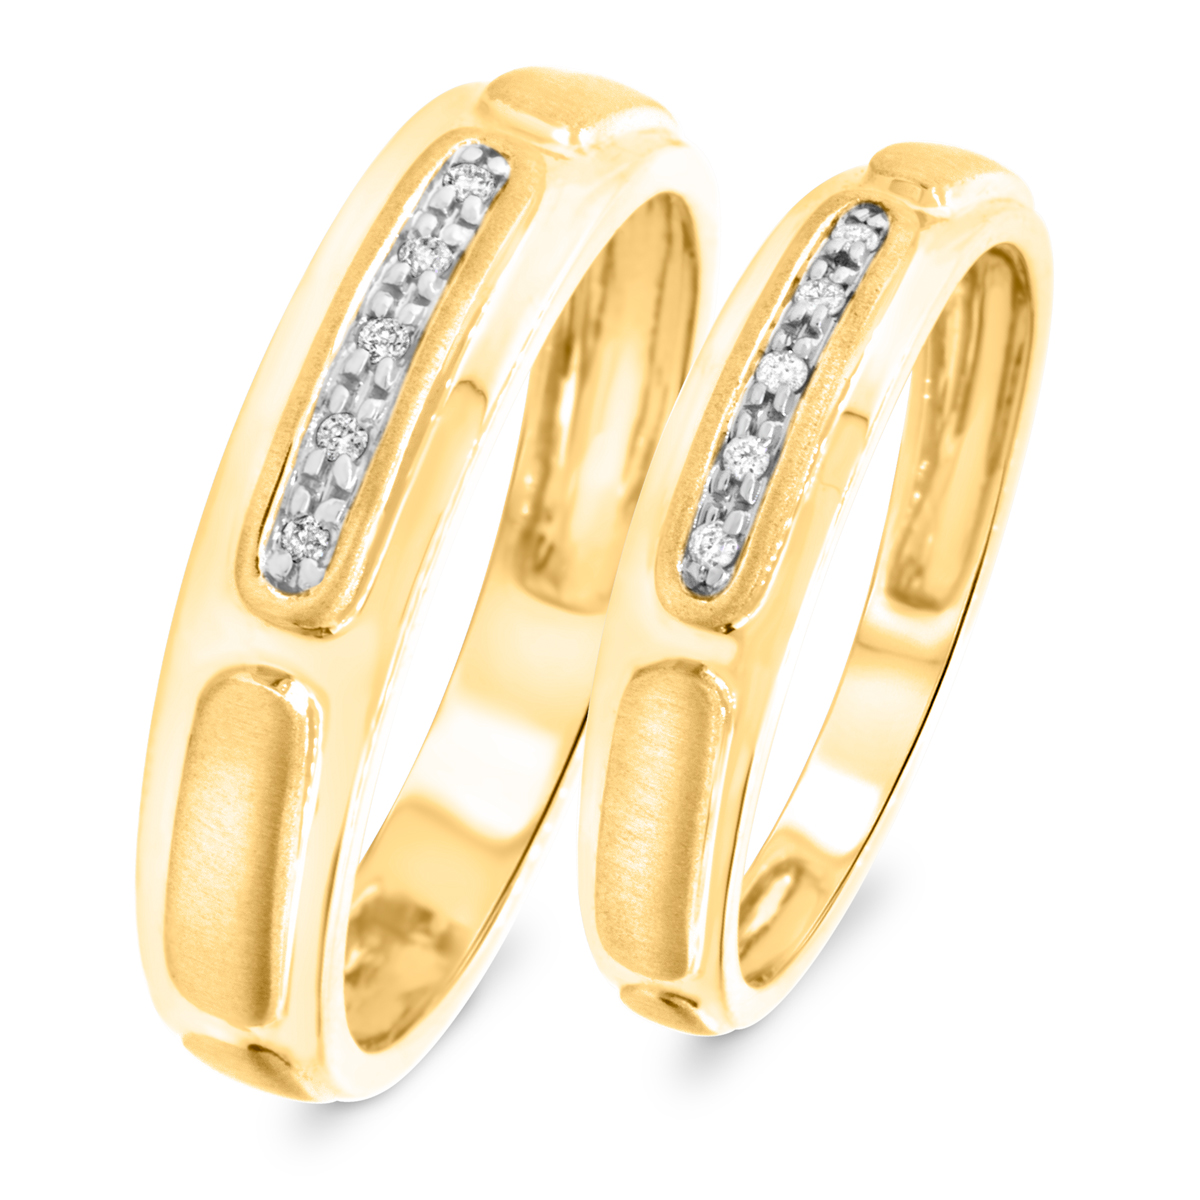 1/15 Carat T.W. Round Cut Diamond His And Hers Wedding Band Set 10K Yellow Gold-